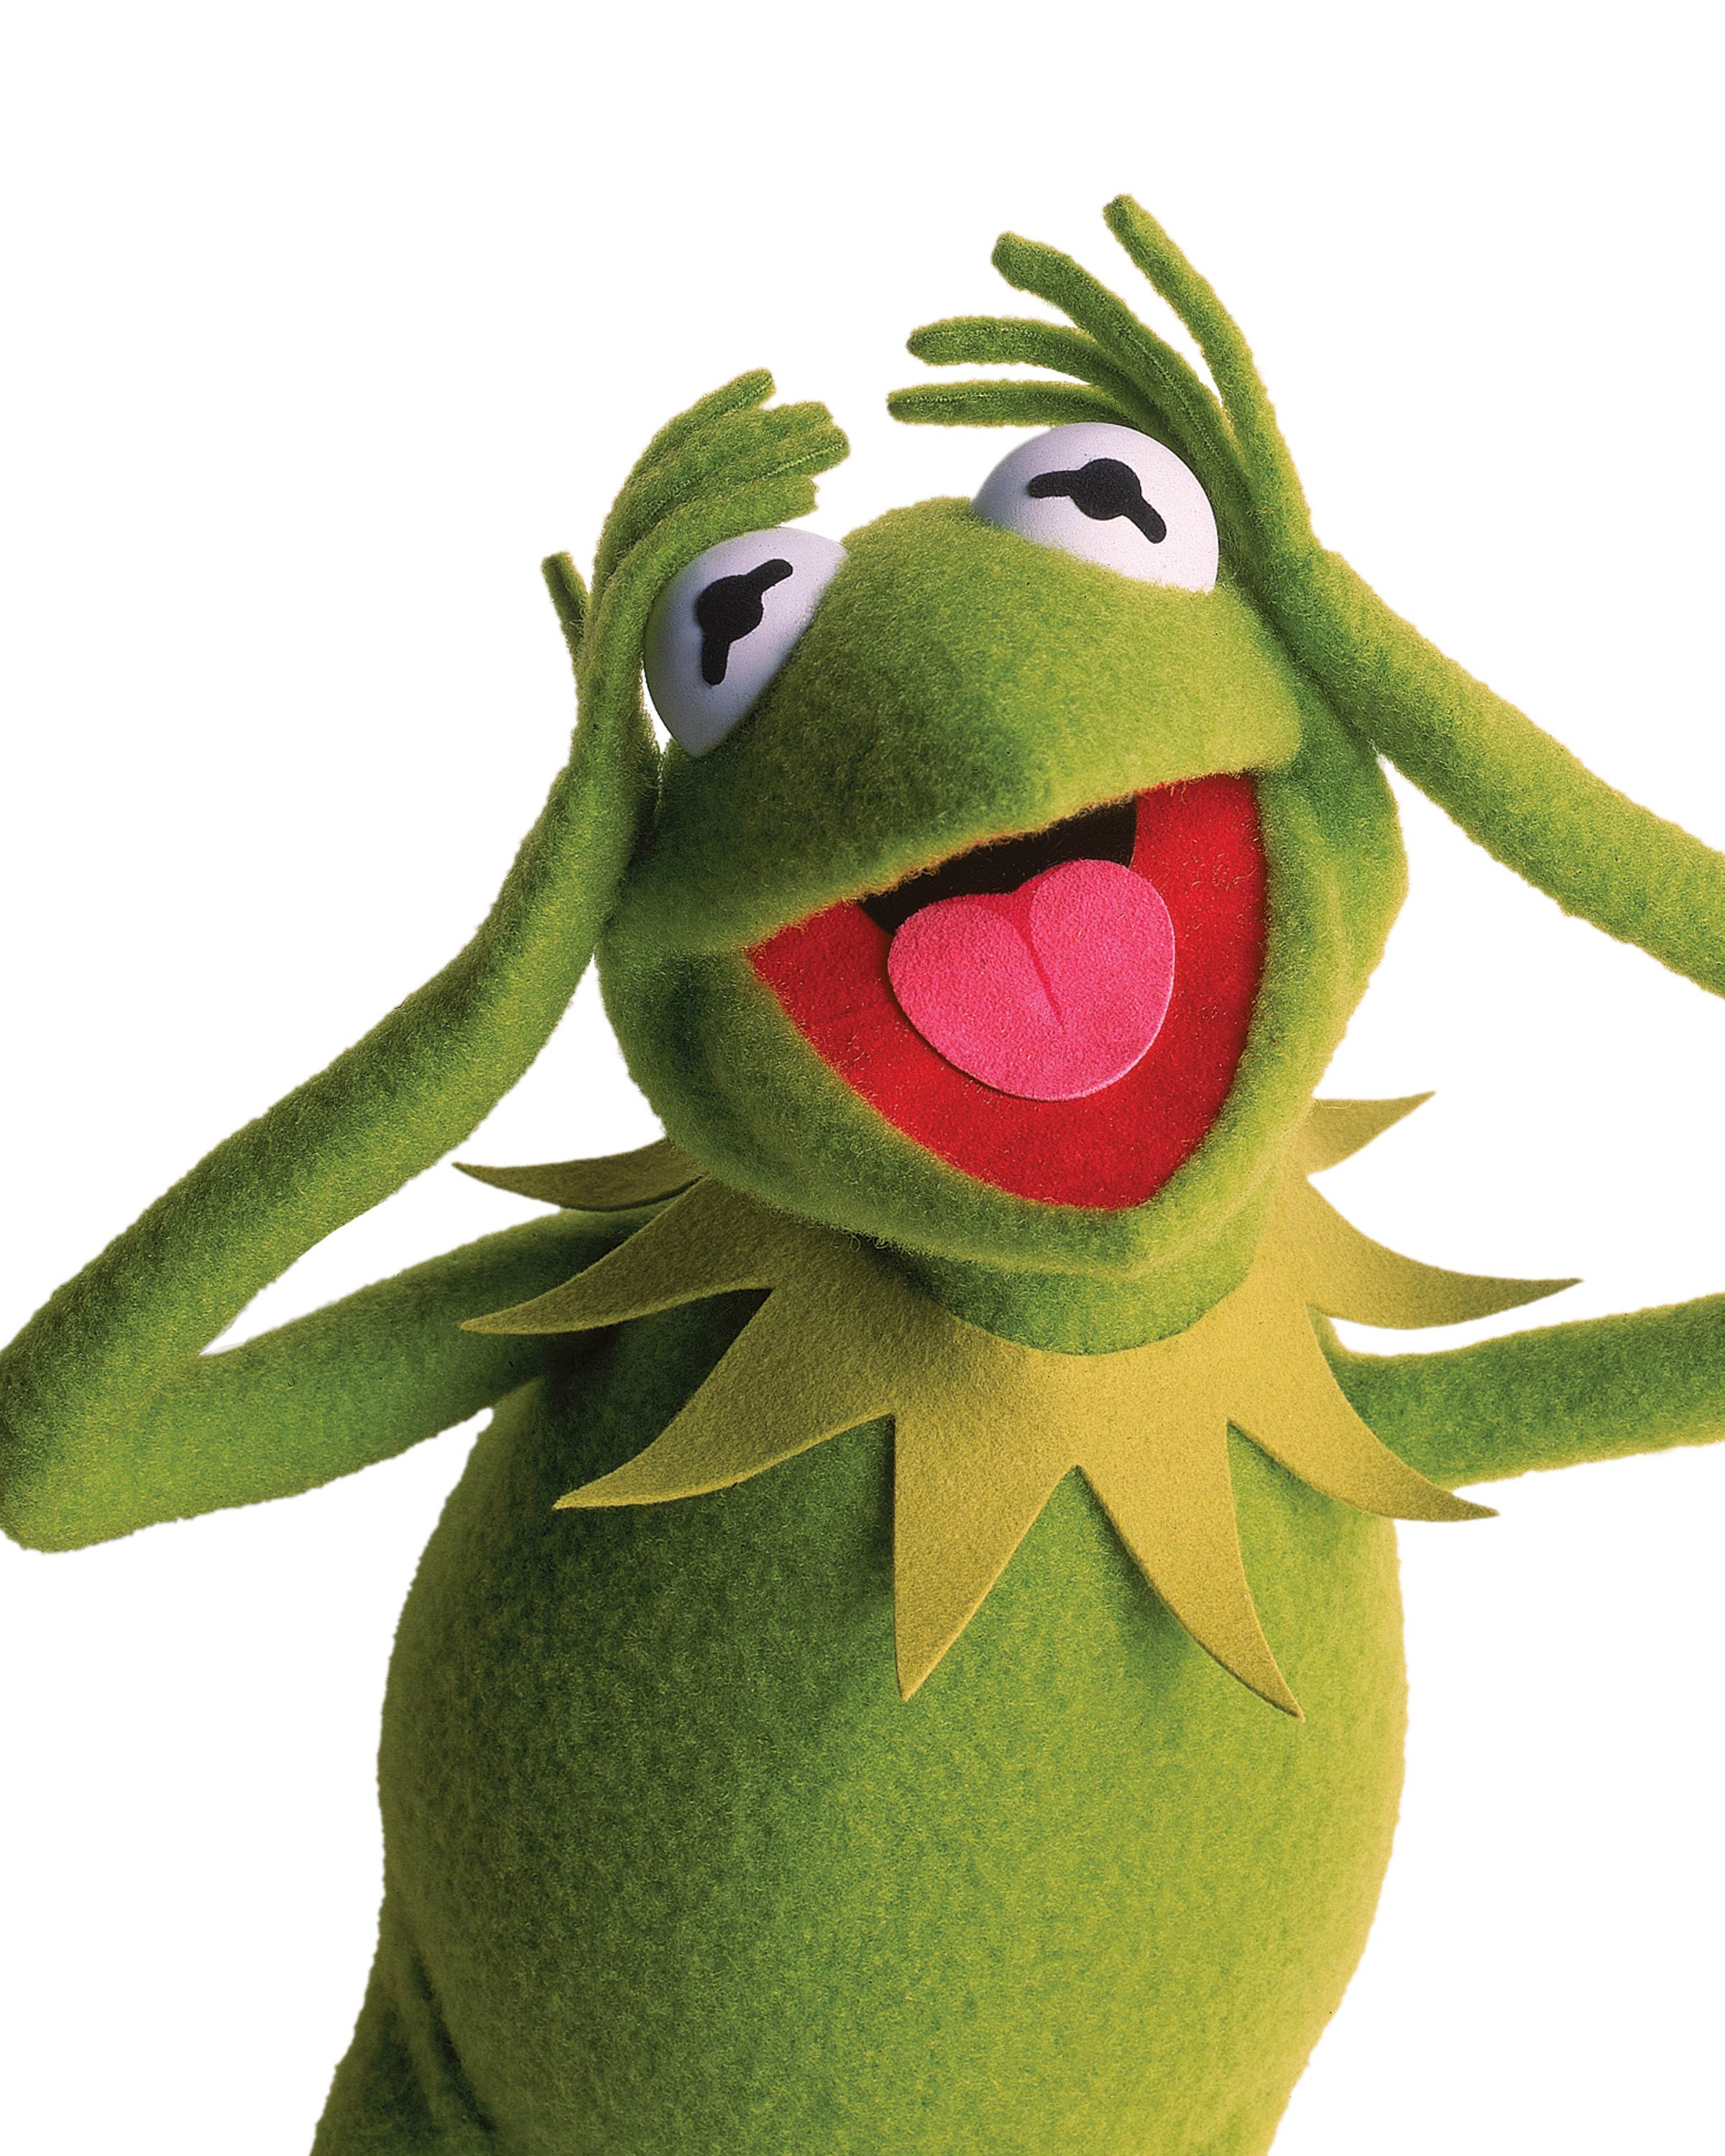 2400x3000 Kermit The Frog From The Muppets Wallpaper - Kermit The Frog ...